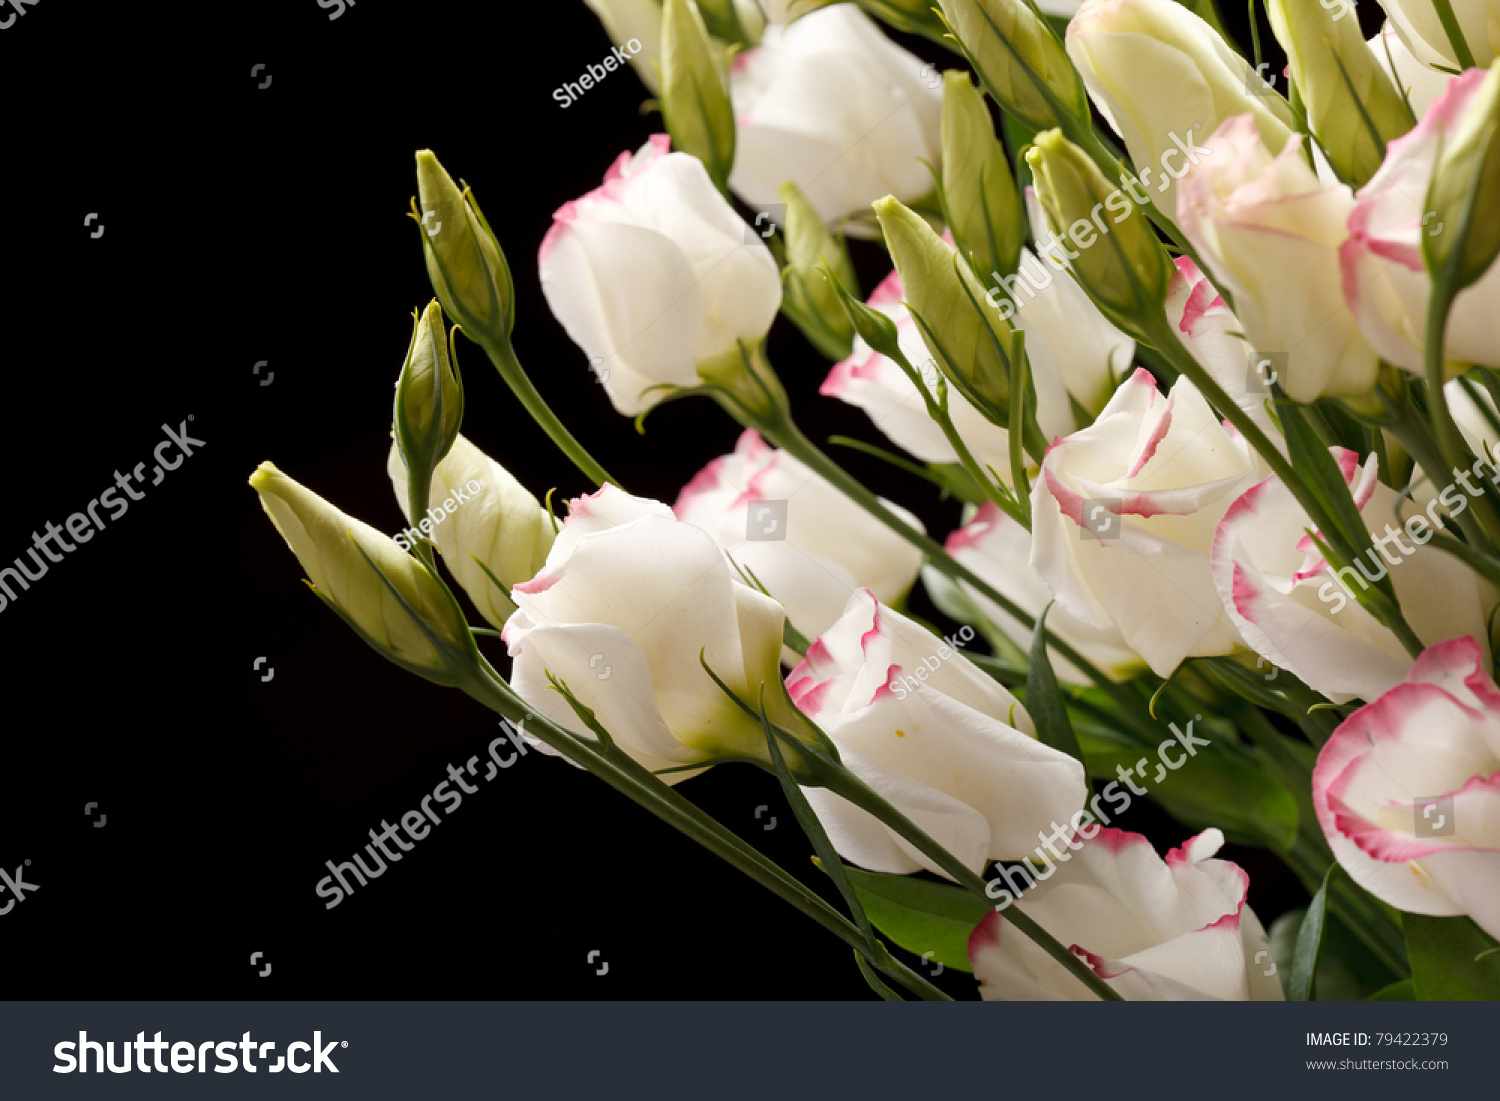 nice flowers stock foto   shutterstock, Beautiful flower